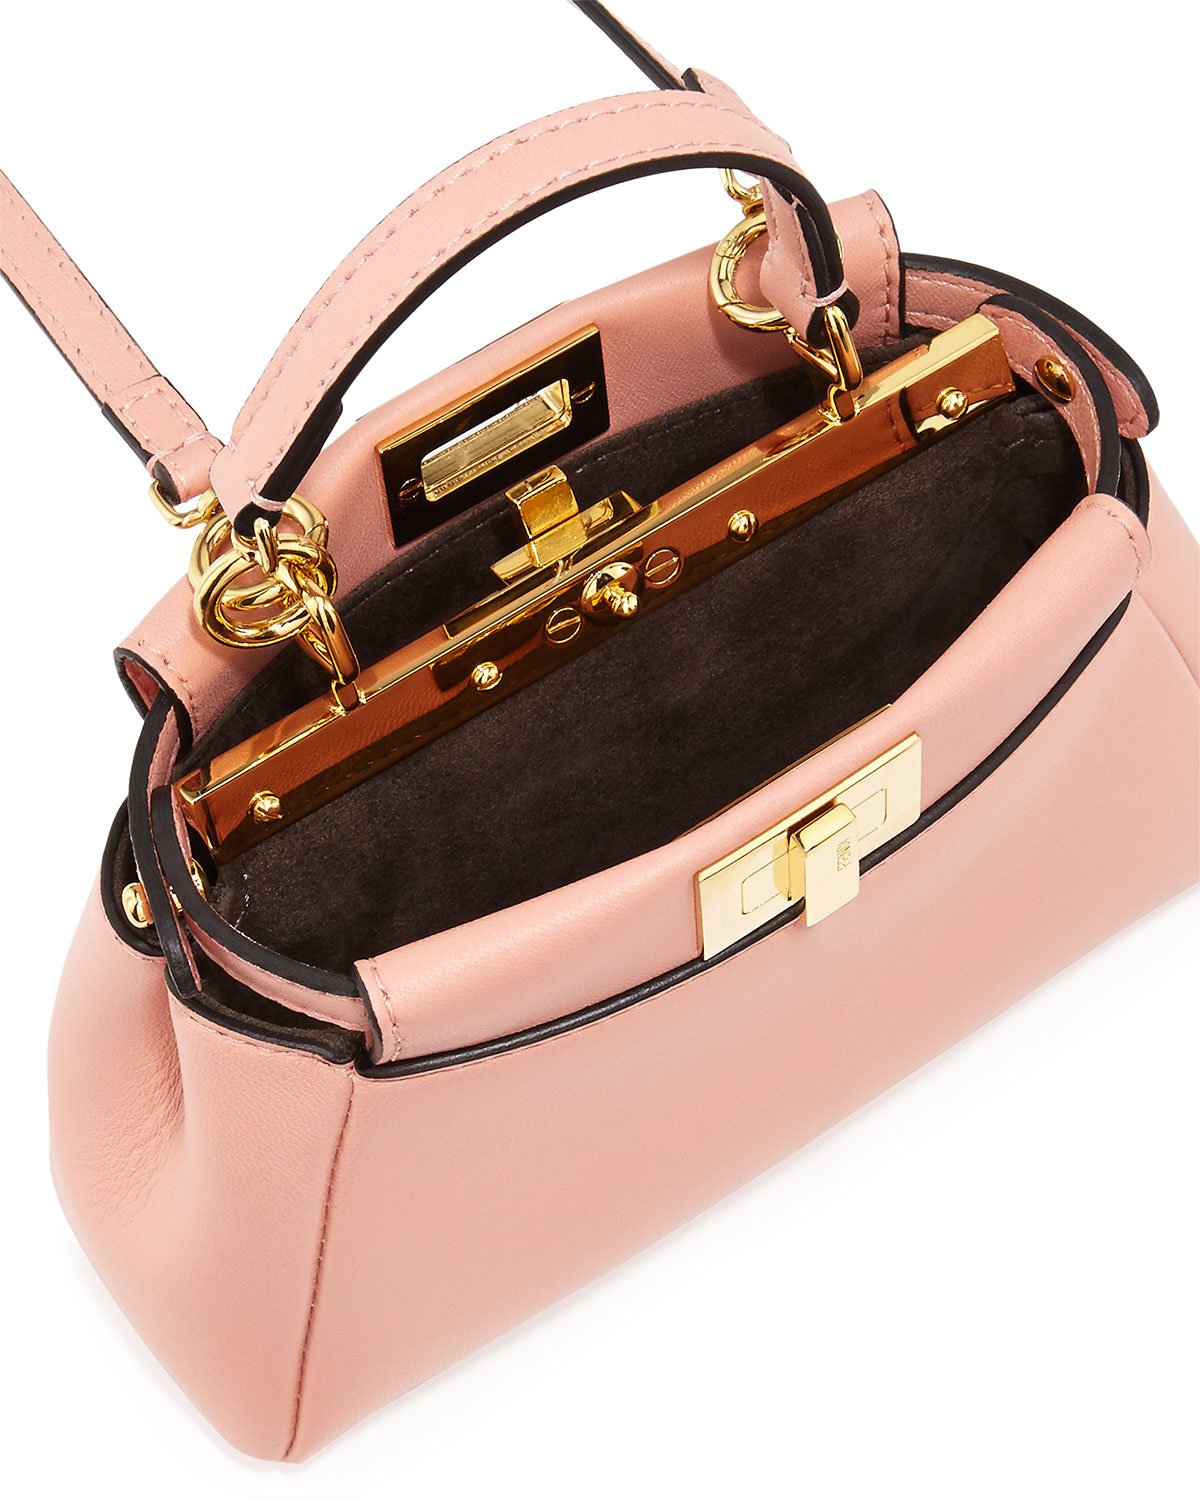 Fendi Peekaboo Micro Satchel Bag in Pink - Lyst a13fcc8b4b607